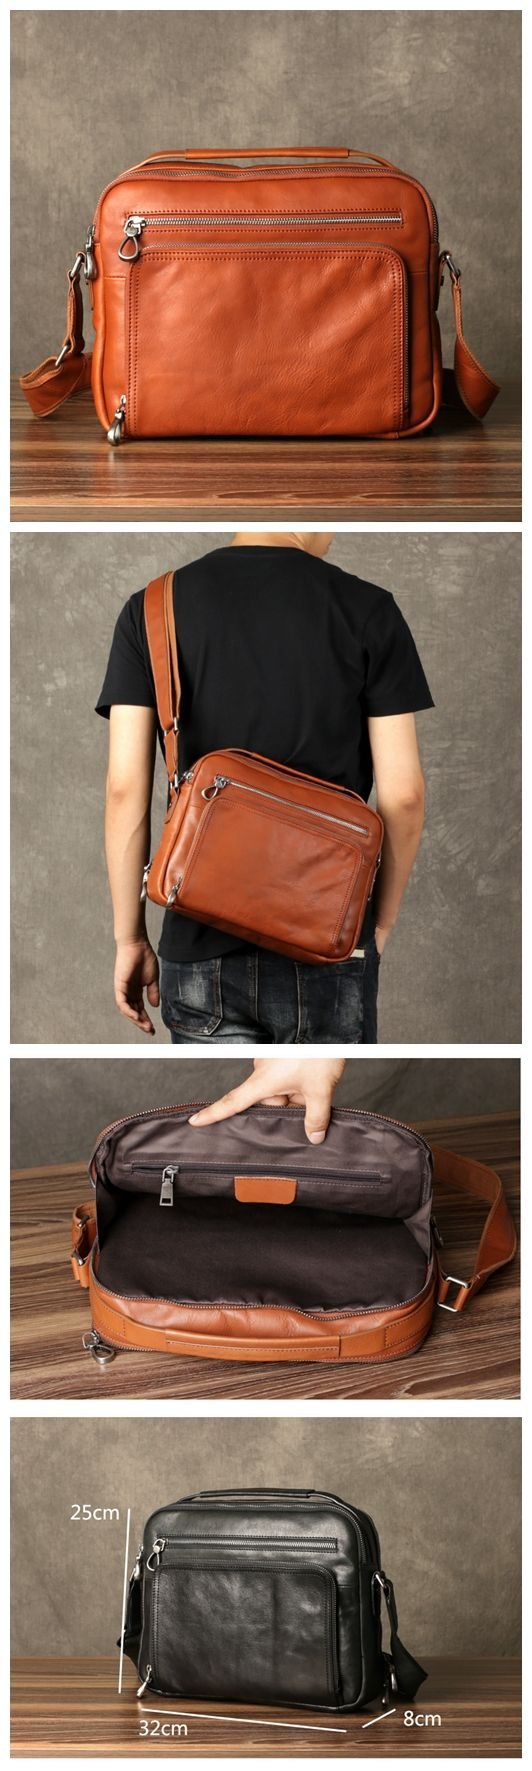 LEATHER SATCHEL, LEATHER BRIEFCASE, MENS WEEKEND BAG, MENS SATCHEL, LEATHER SHOULDER BAG